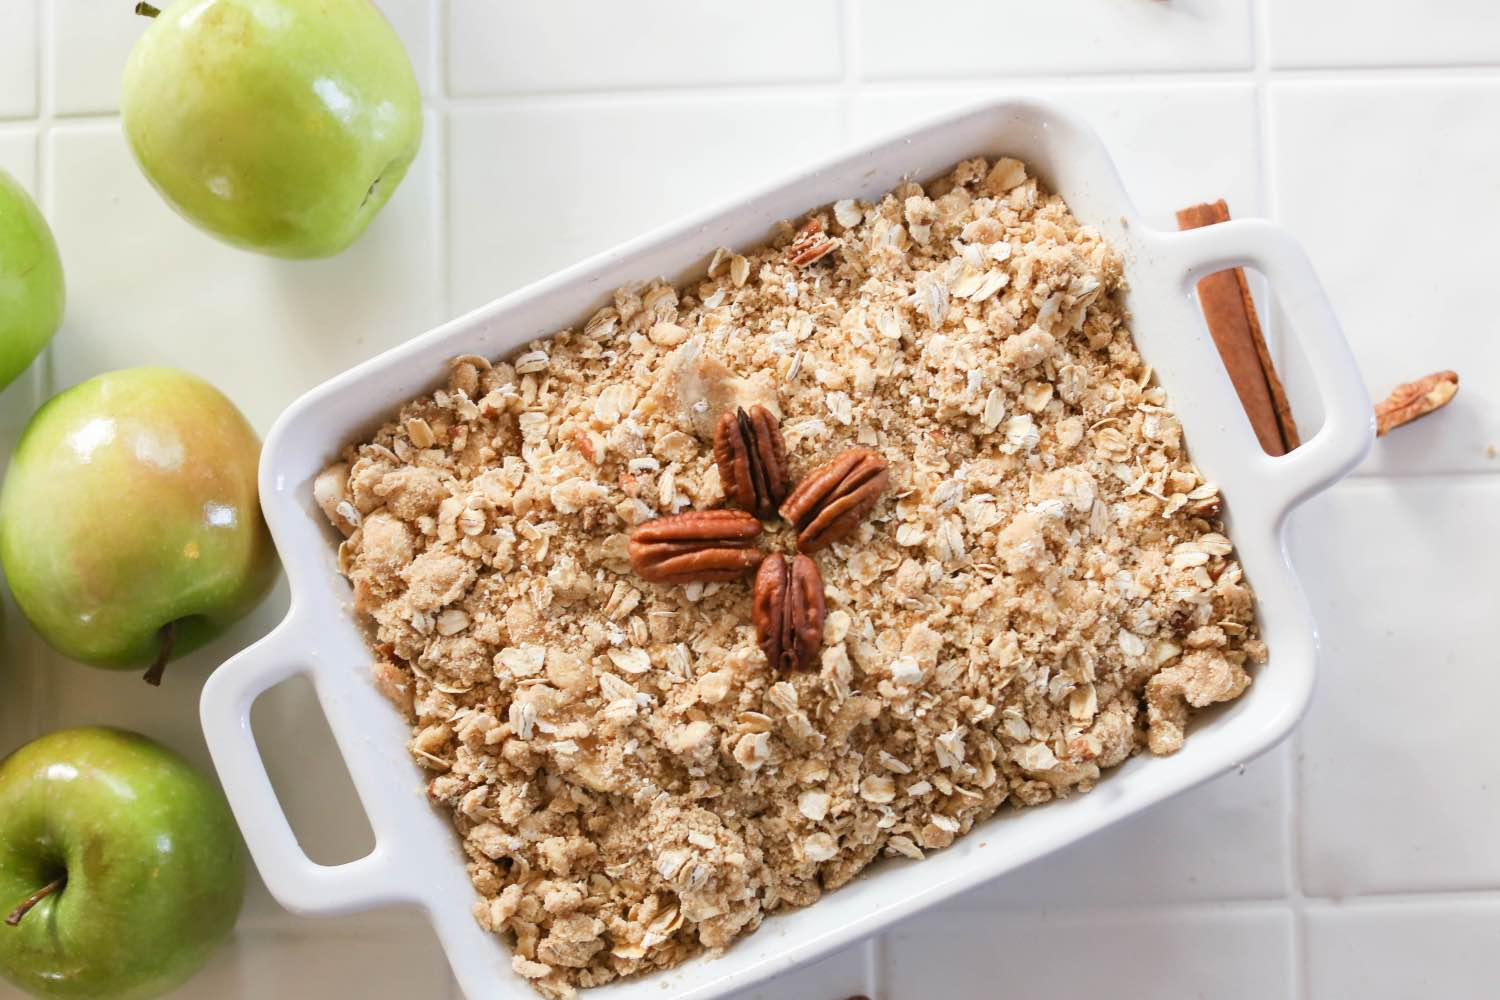 add the crumble topping and the pecans - apple crisp ready to bake